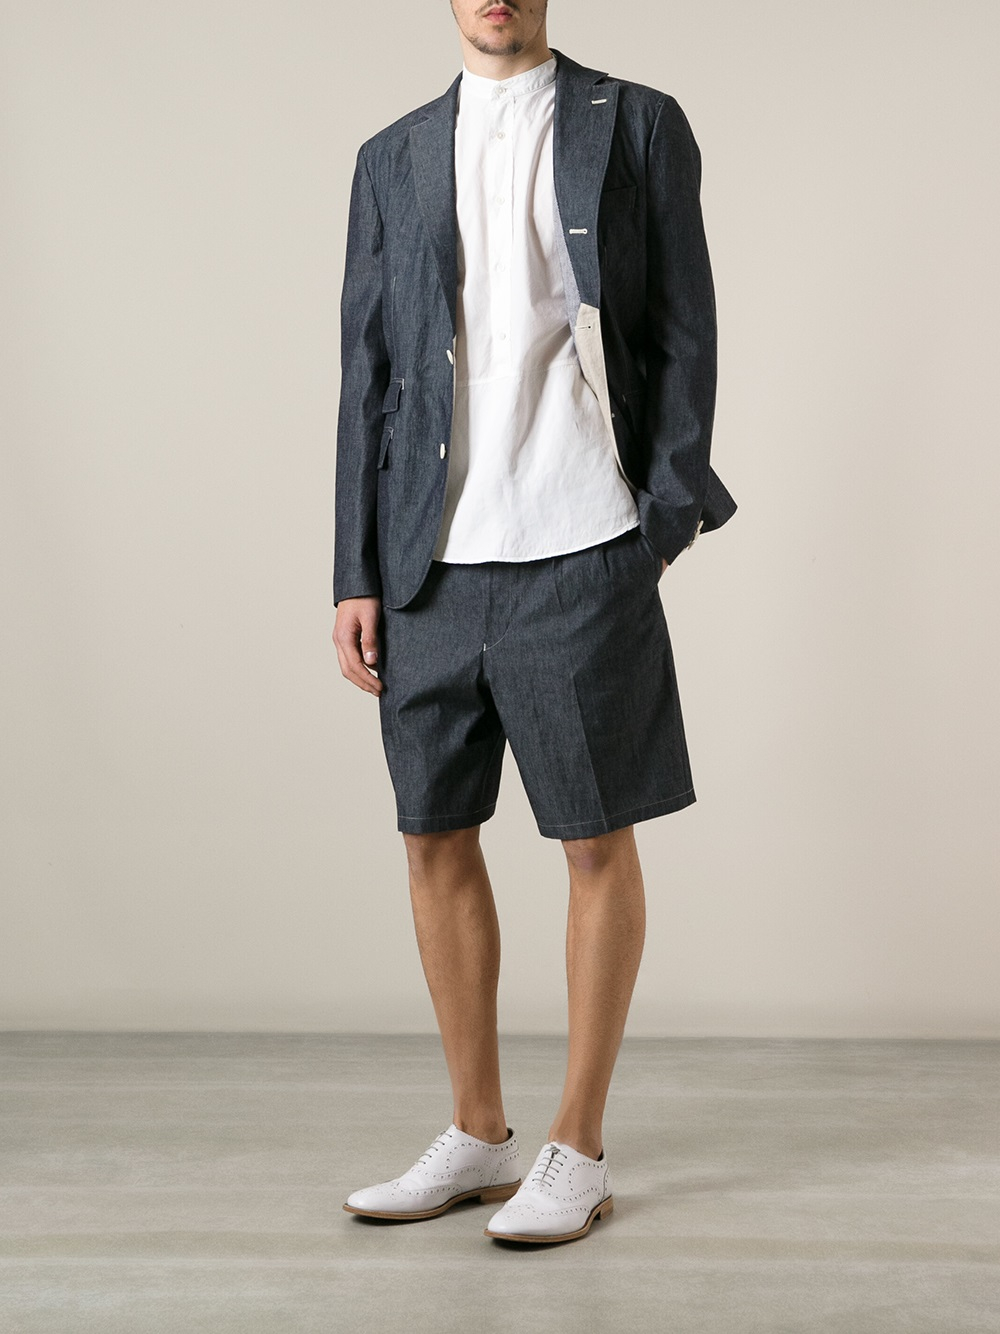 Junya watanabe Tailored Chambray Shorts in Gray for Men | Lyst